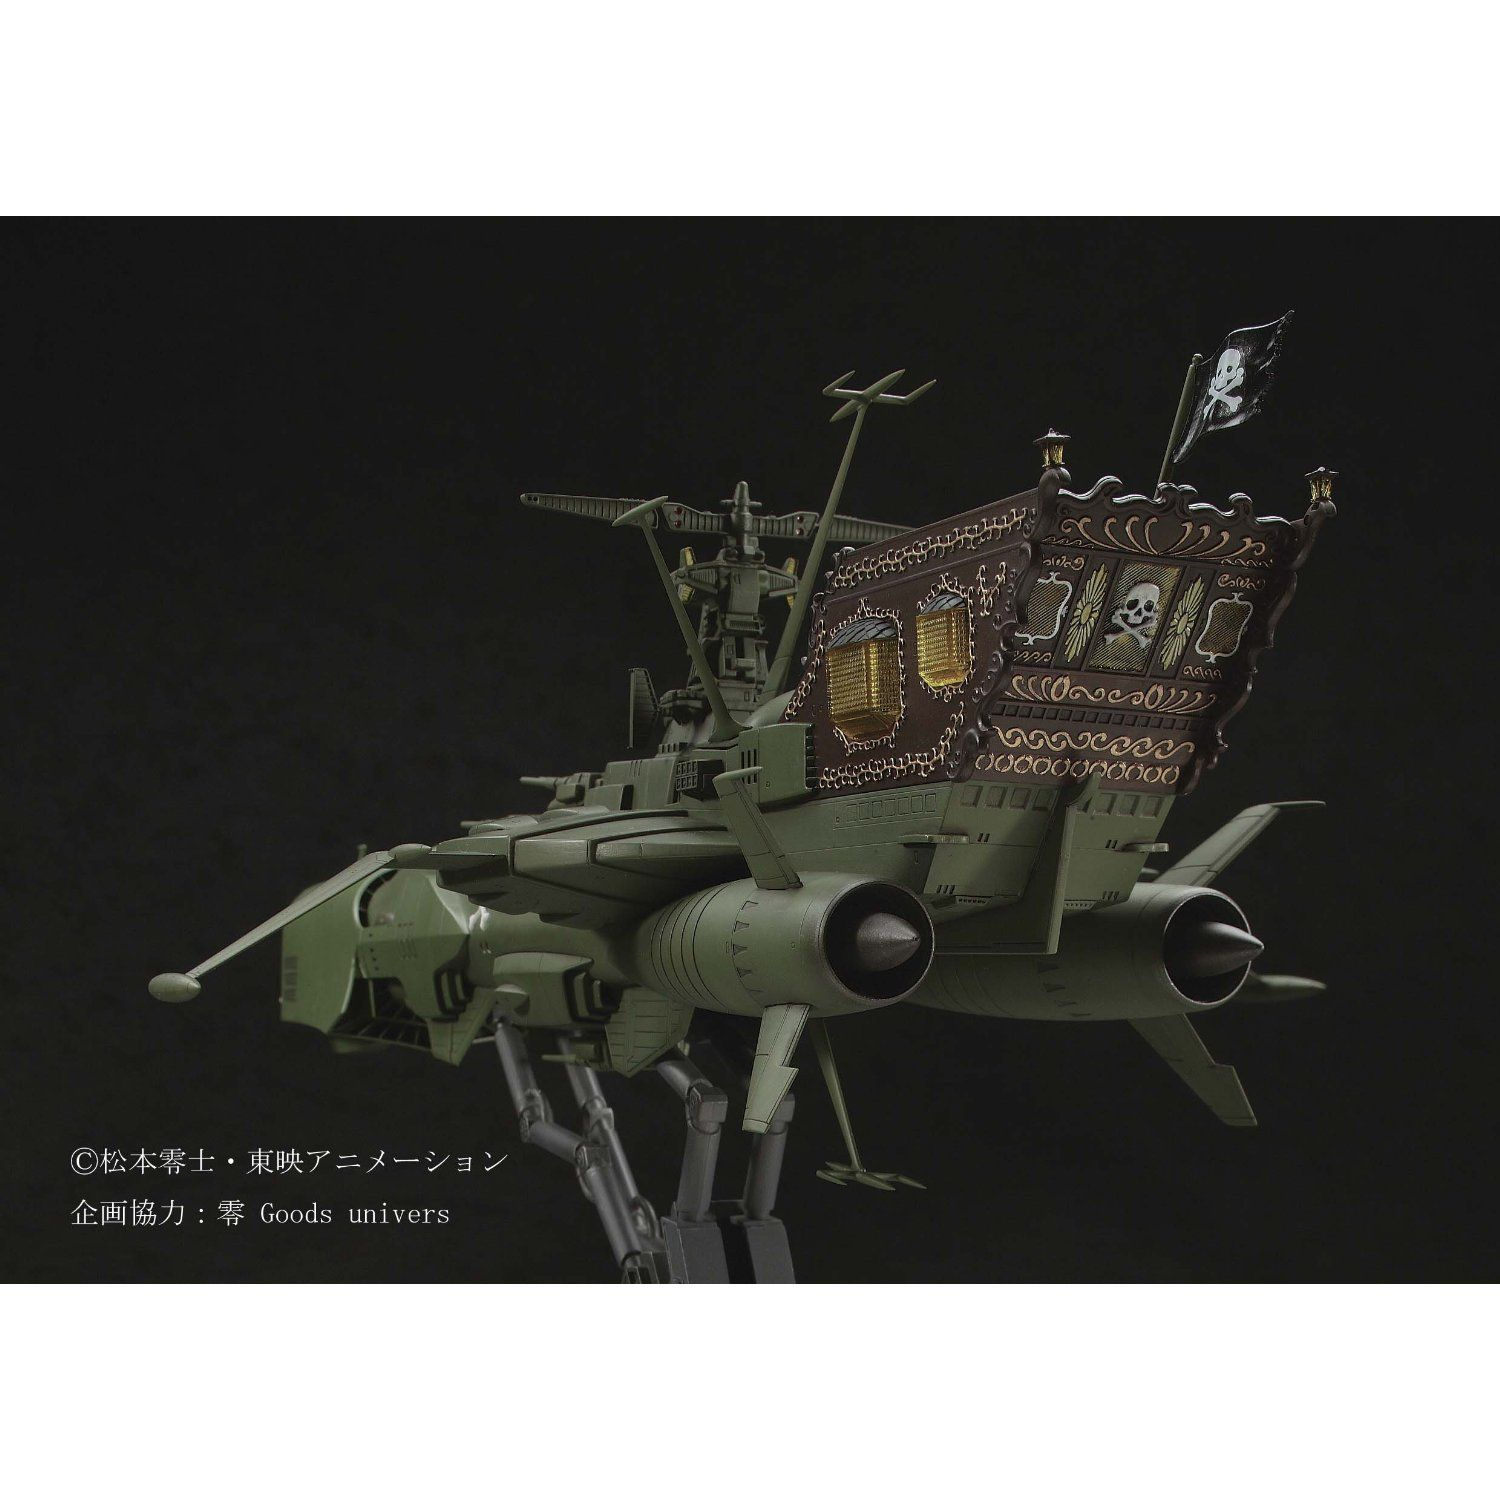 Space Pirate Battle Ship Arcadia Plastic Model Toys Games Space Pirate Space Pirate Captain Harlock Star Wars Theories